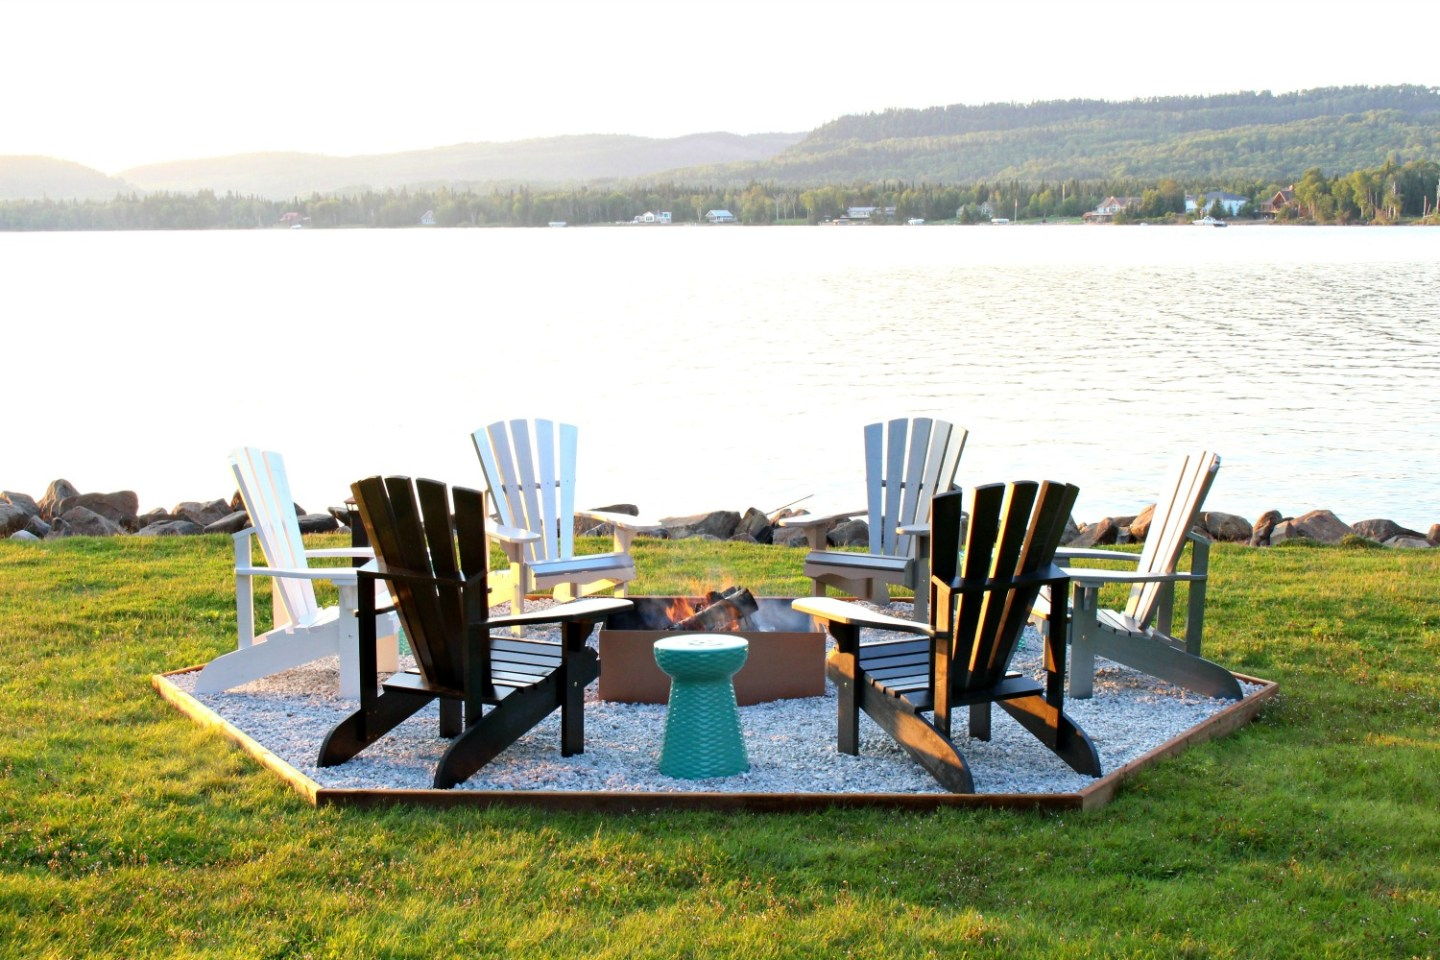 DIY Ombre Adirondack Chairs (Sponsored by The Home Depot Canada)